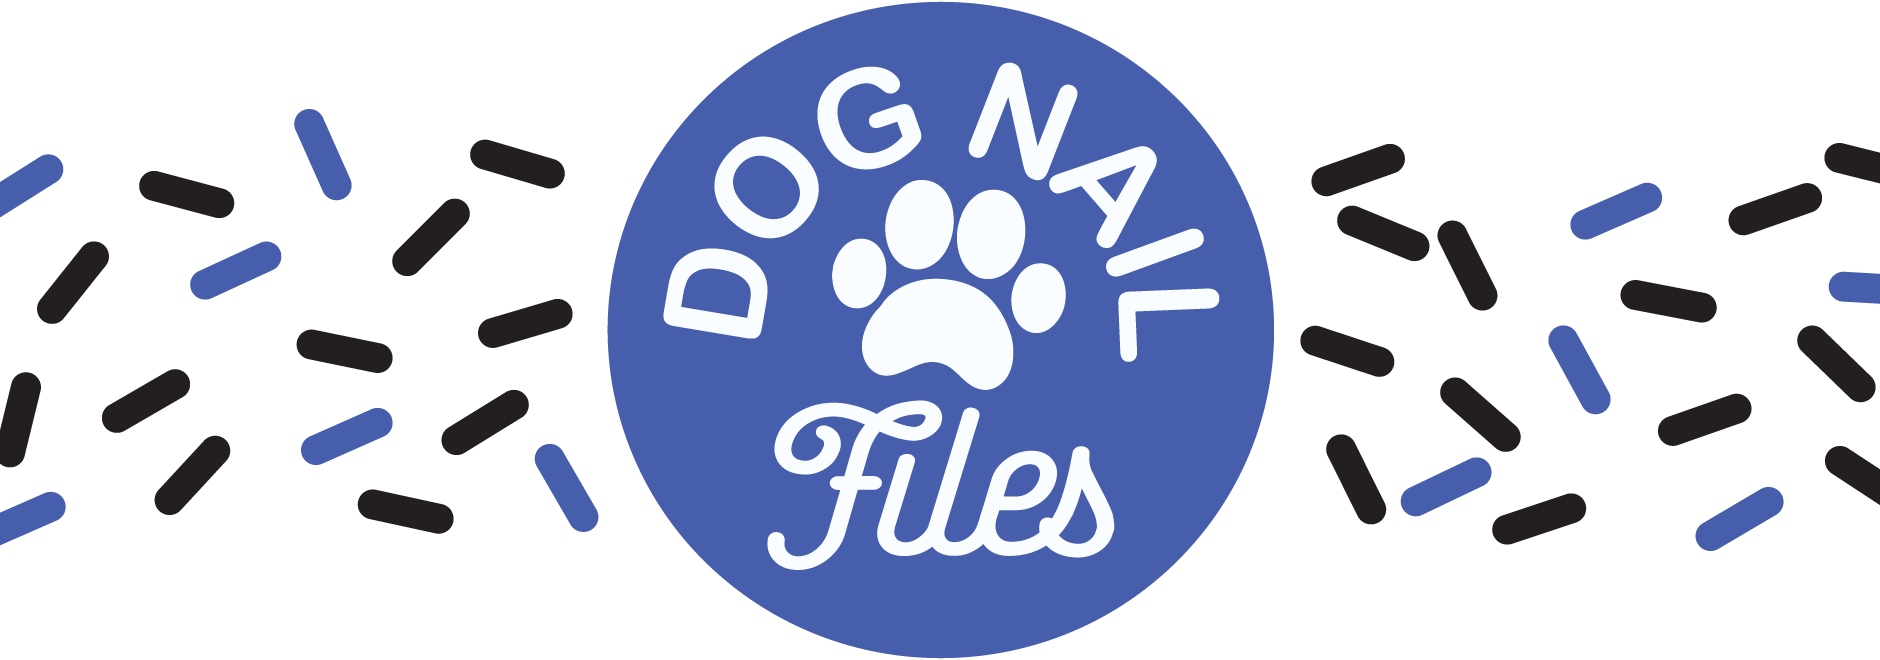 Dog nail files logo